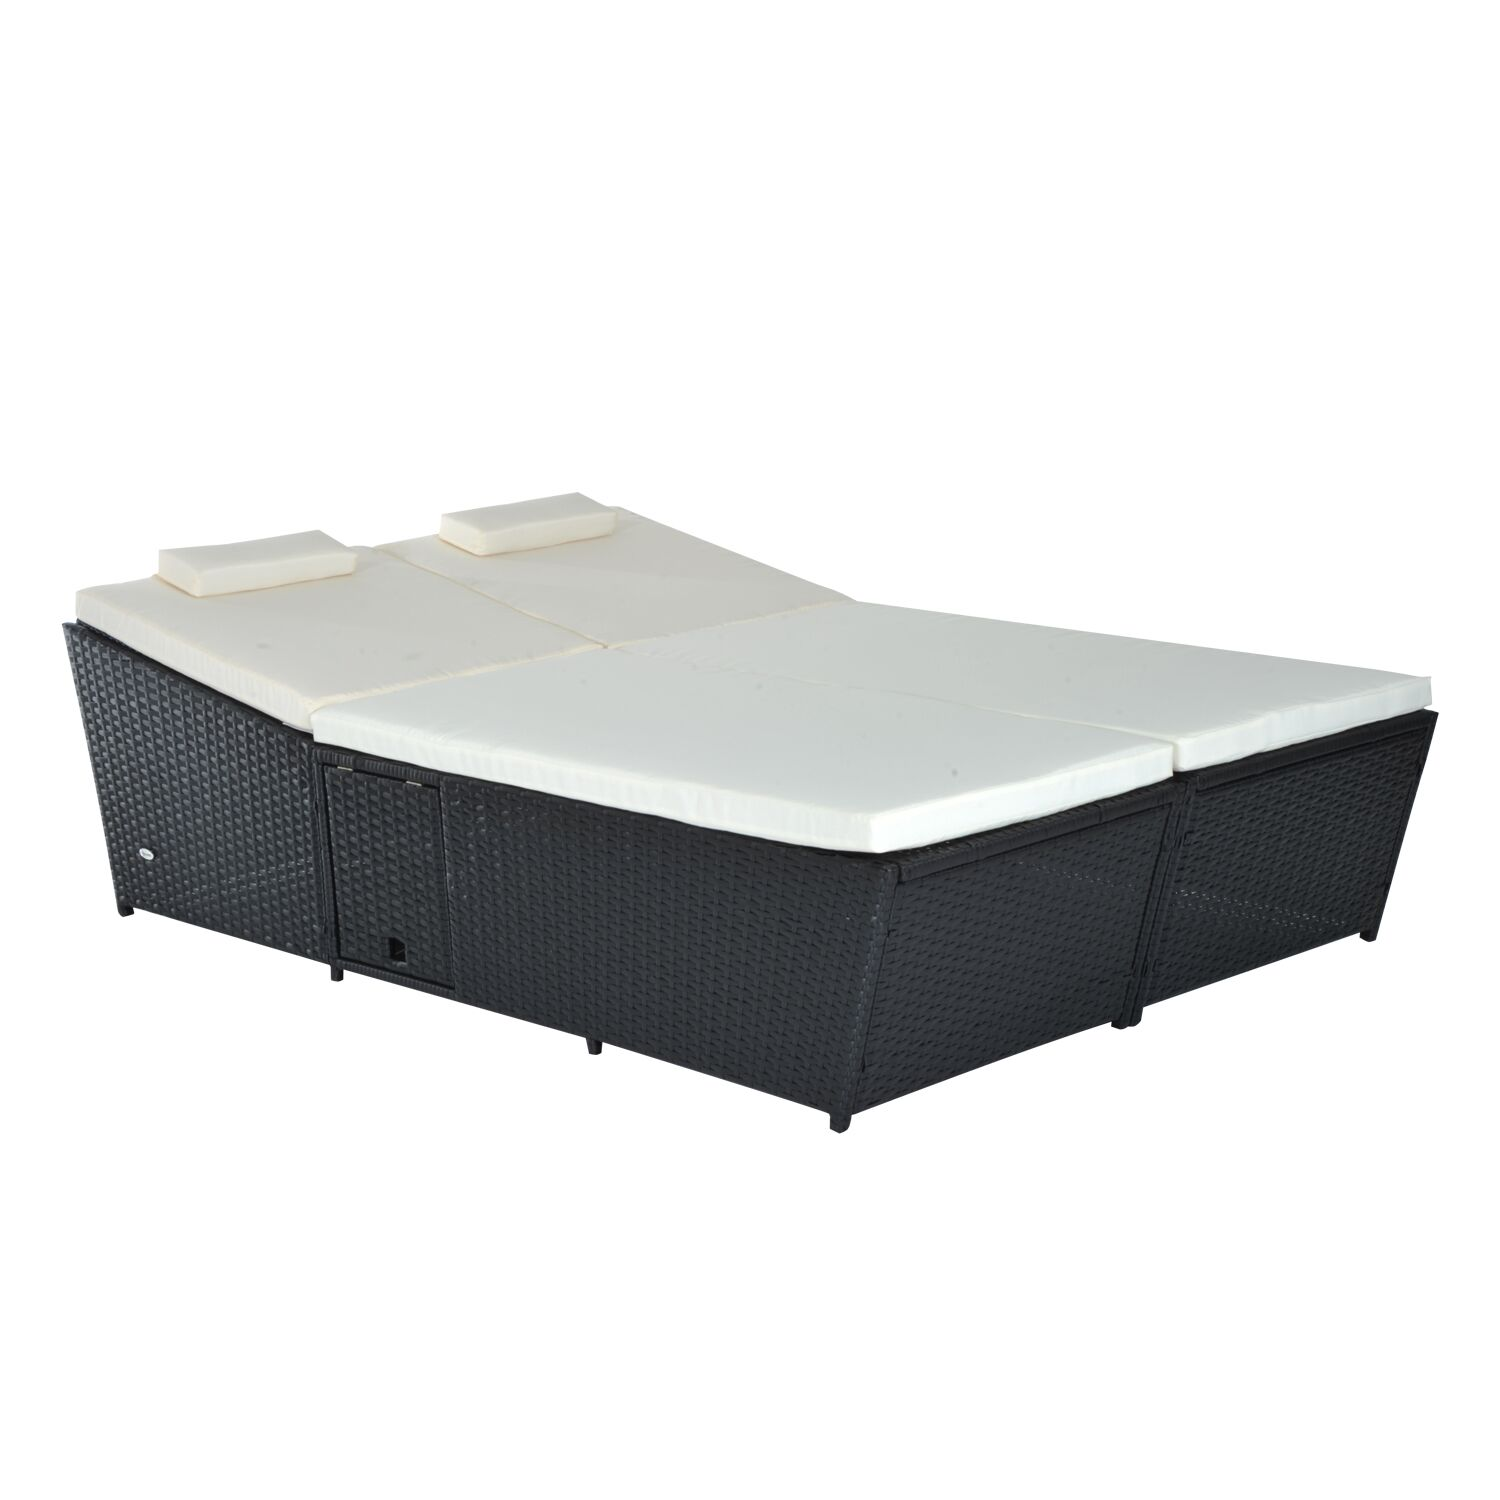 Gowdy Outdoor Rattan/Wicker 2-Person Daybed Color: Black